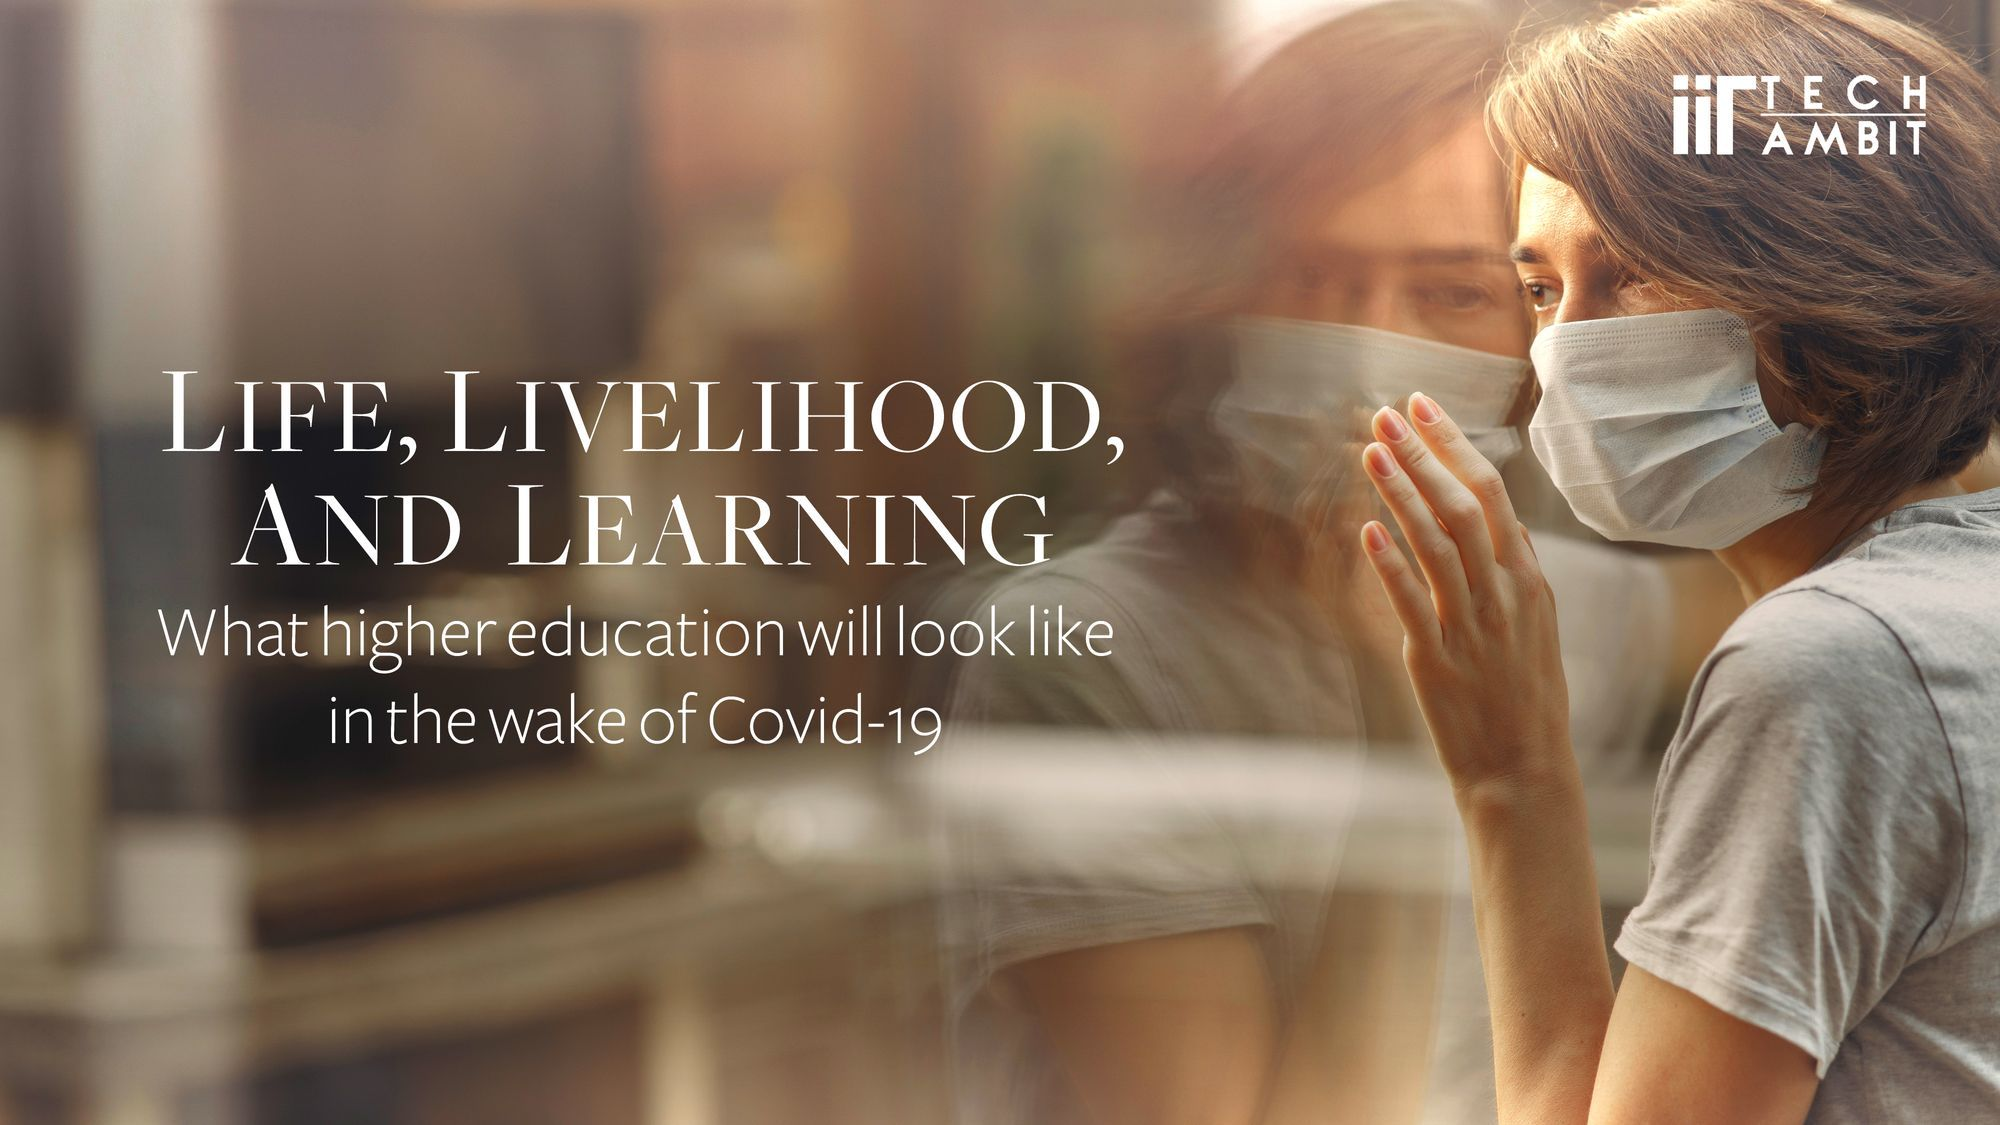 Life, livelihood, and learning: What higher education will look like in the wake of Covid-19